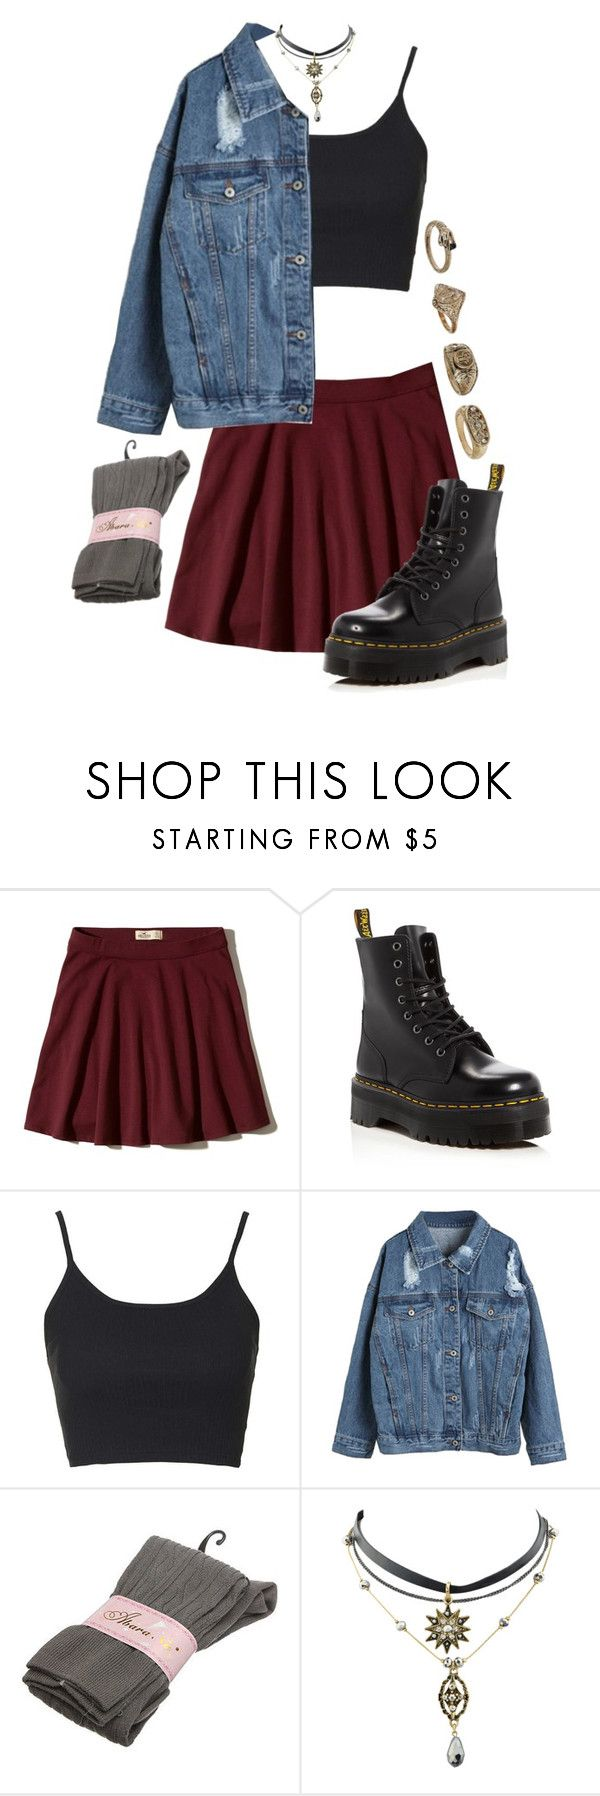 """Never wanted it to be so cold"" by pageslearntothink ❤ liked on Polyvore featuring Hollister Co., Dr. Martens, Topshop and WithChic"